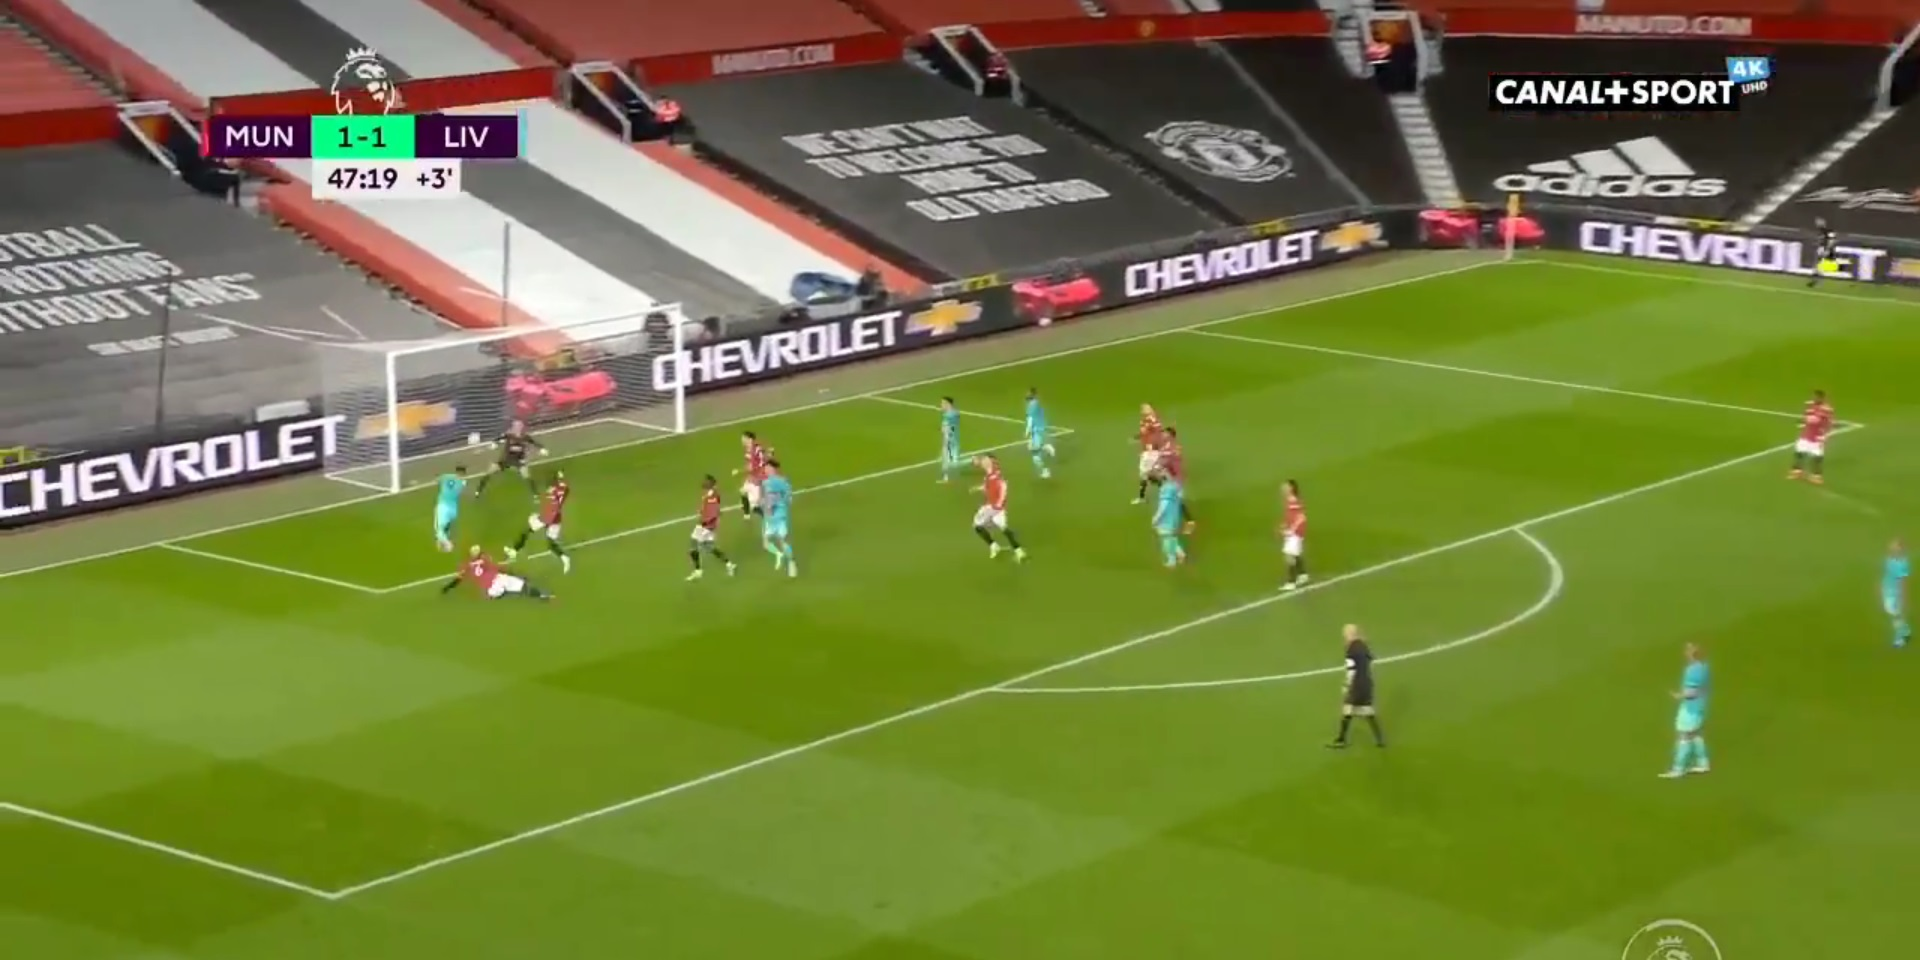 (Video) Liverpool take 2-1 lead at Old Trafford through Bobby Firmino bullet